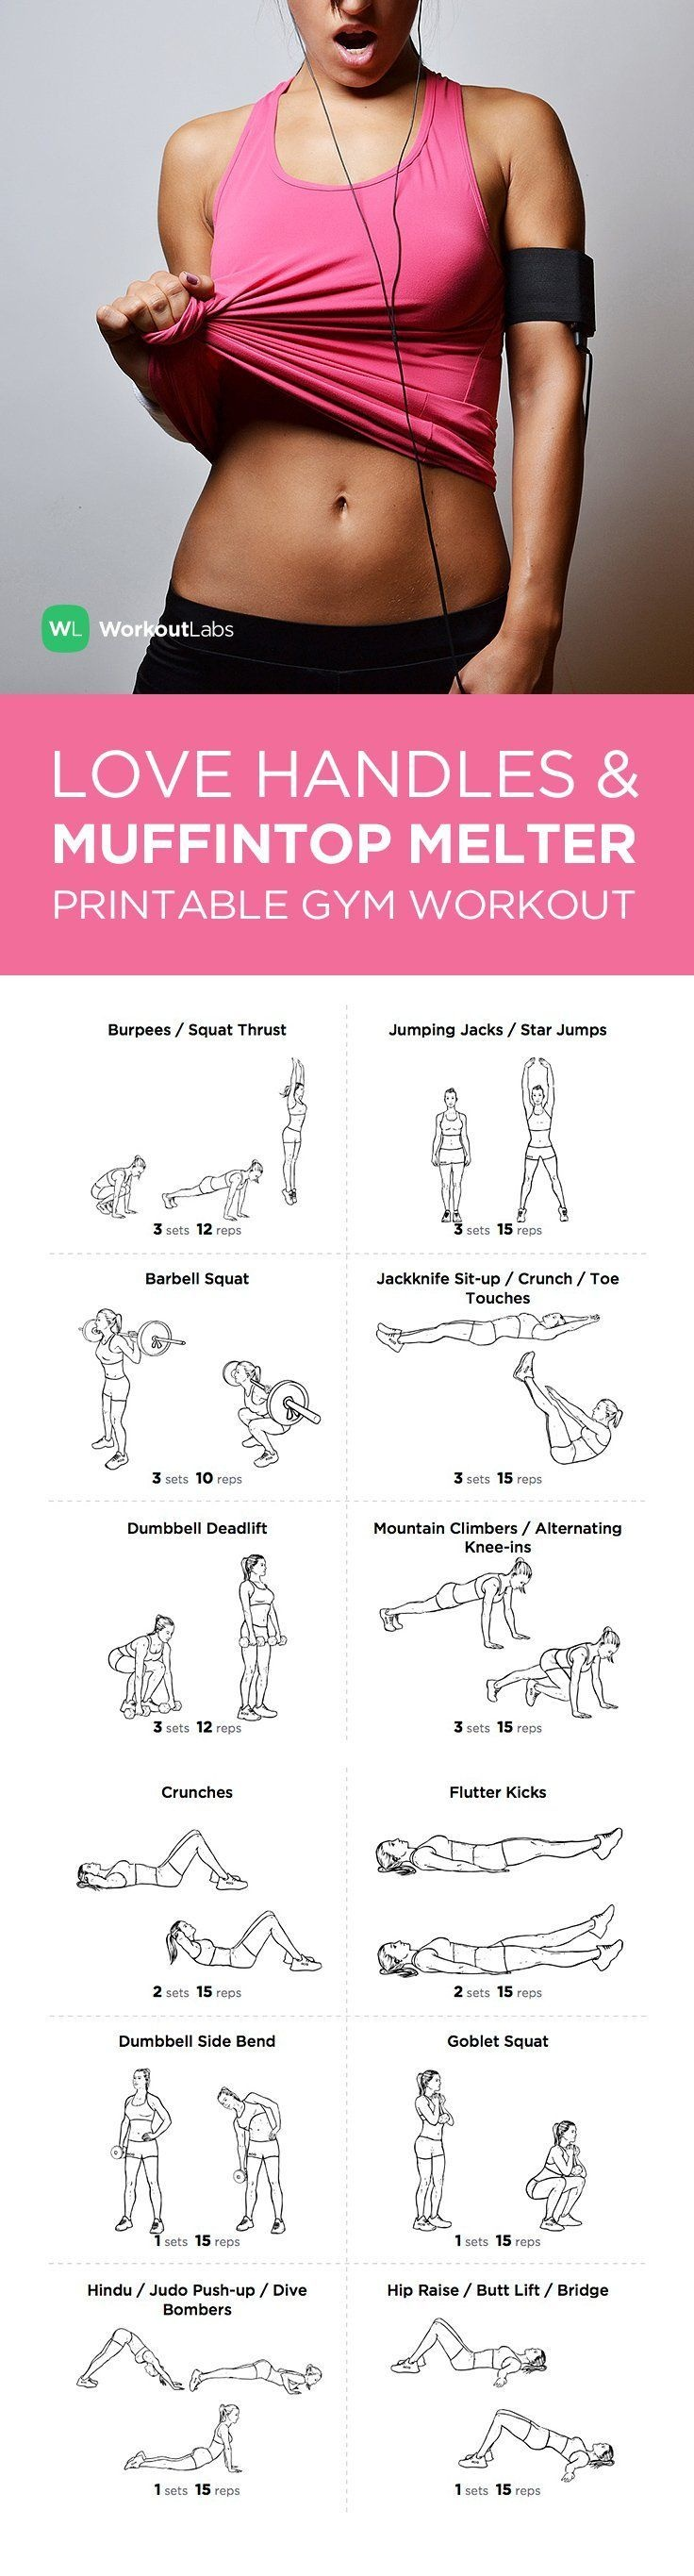 Full Body Workout For Beginners Video Collection | Fitness And - Free Printable Gym Workout Plans